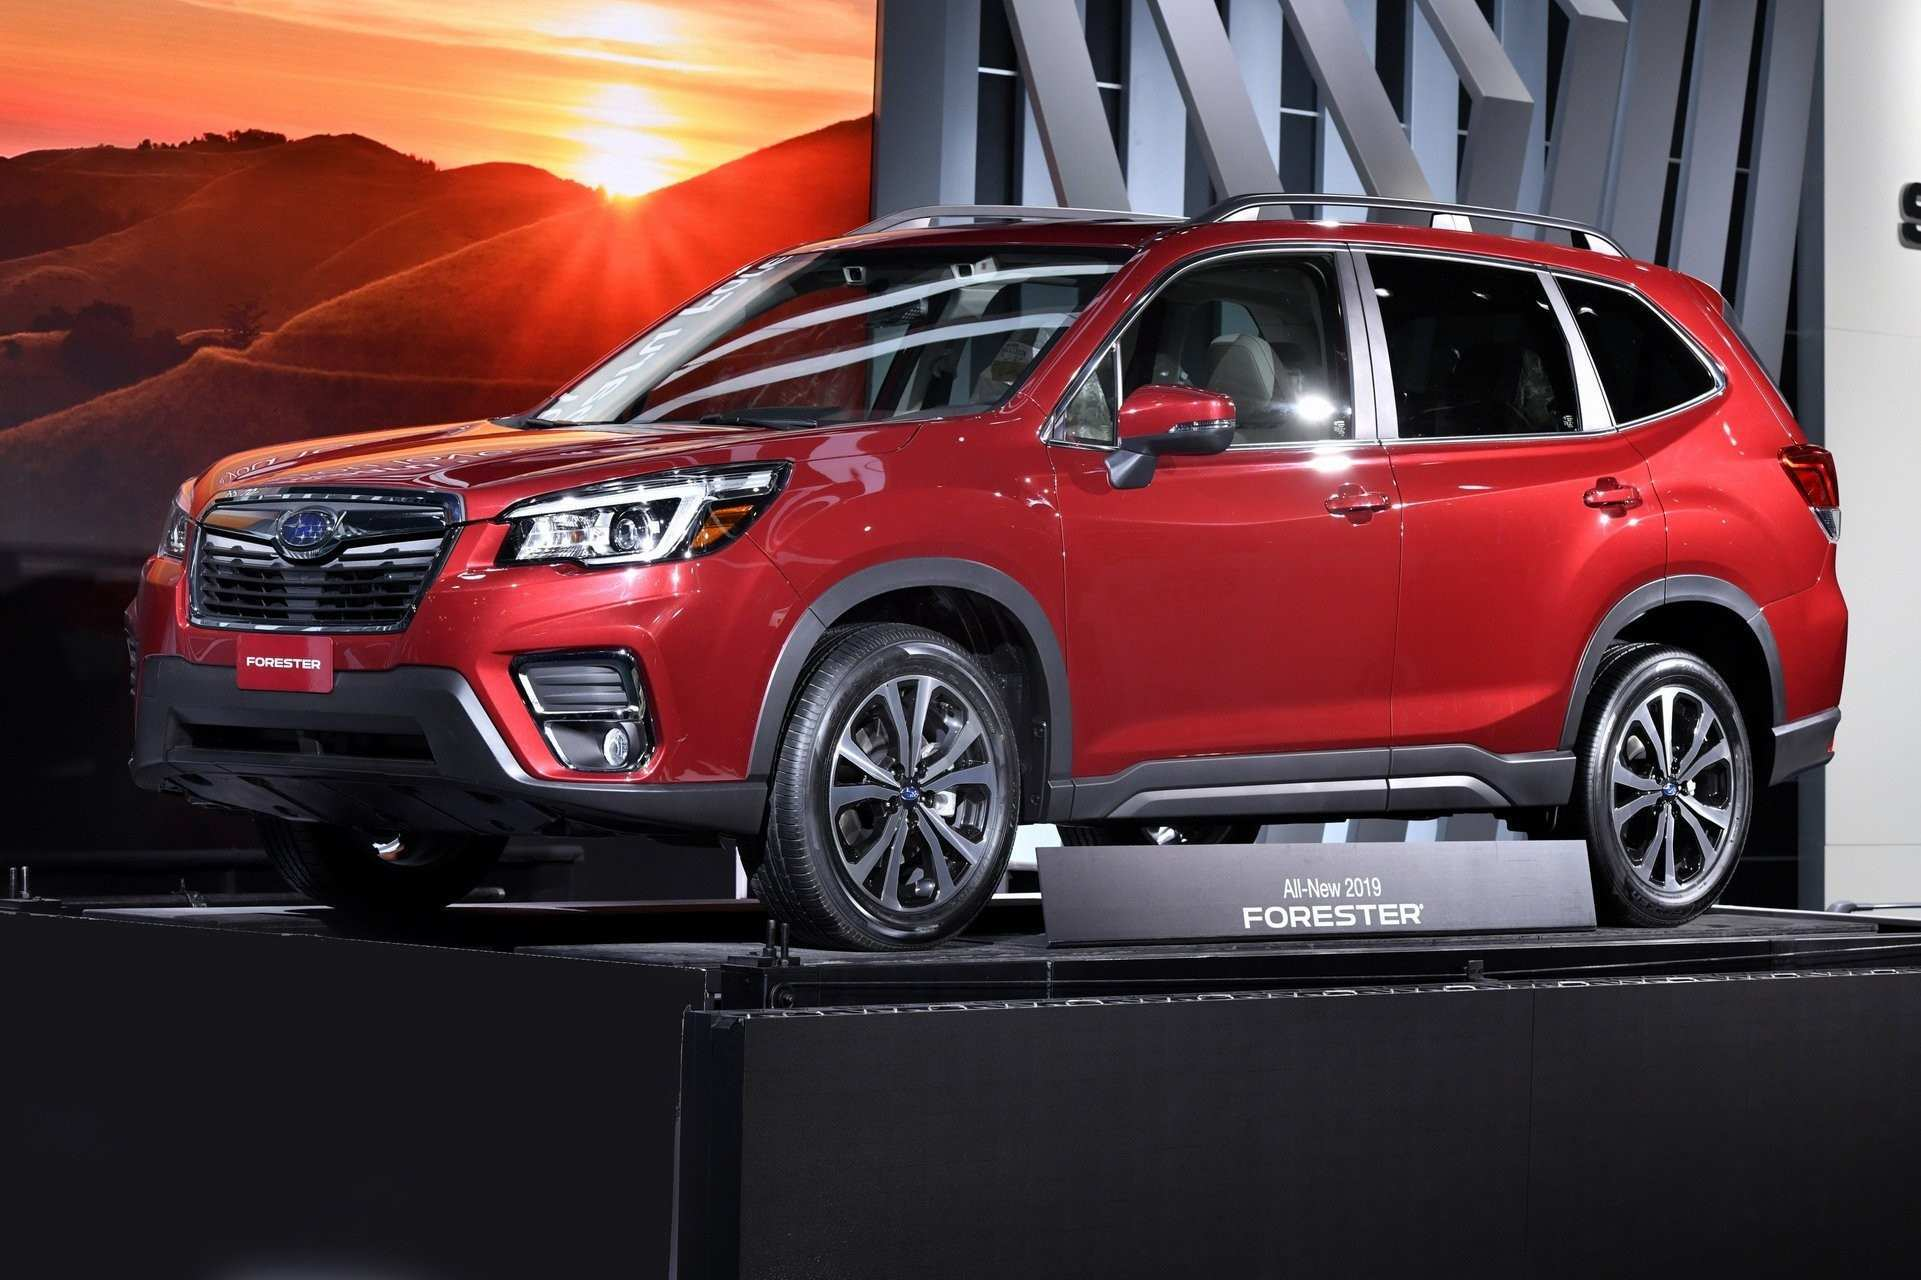 66 Best Review Subaru 2019 Exterior Colors Review Picture for Subaru 2019 Exterior Colors Review